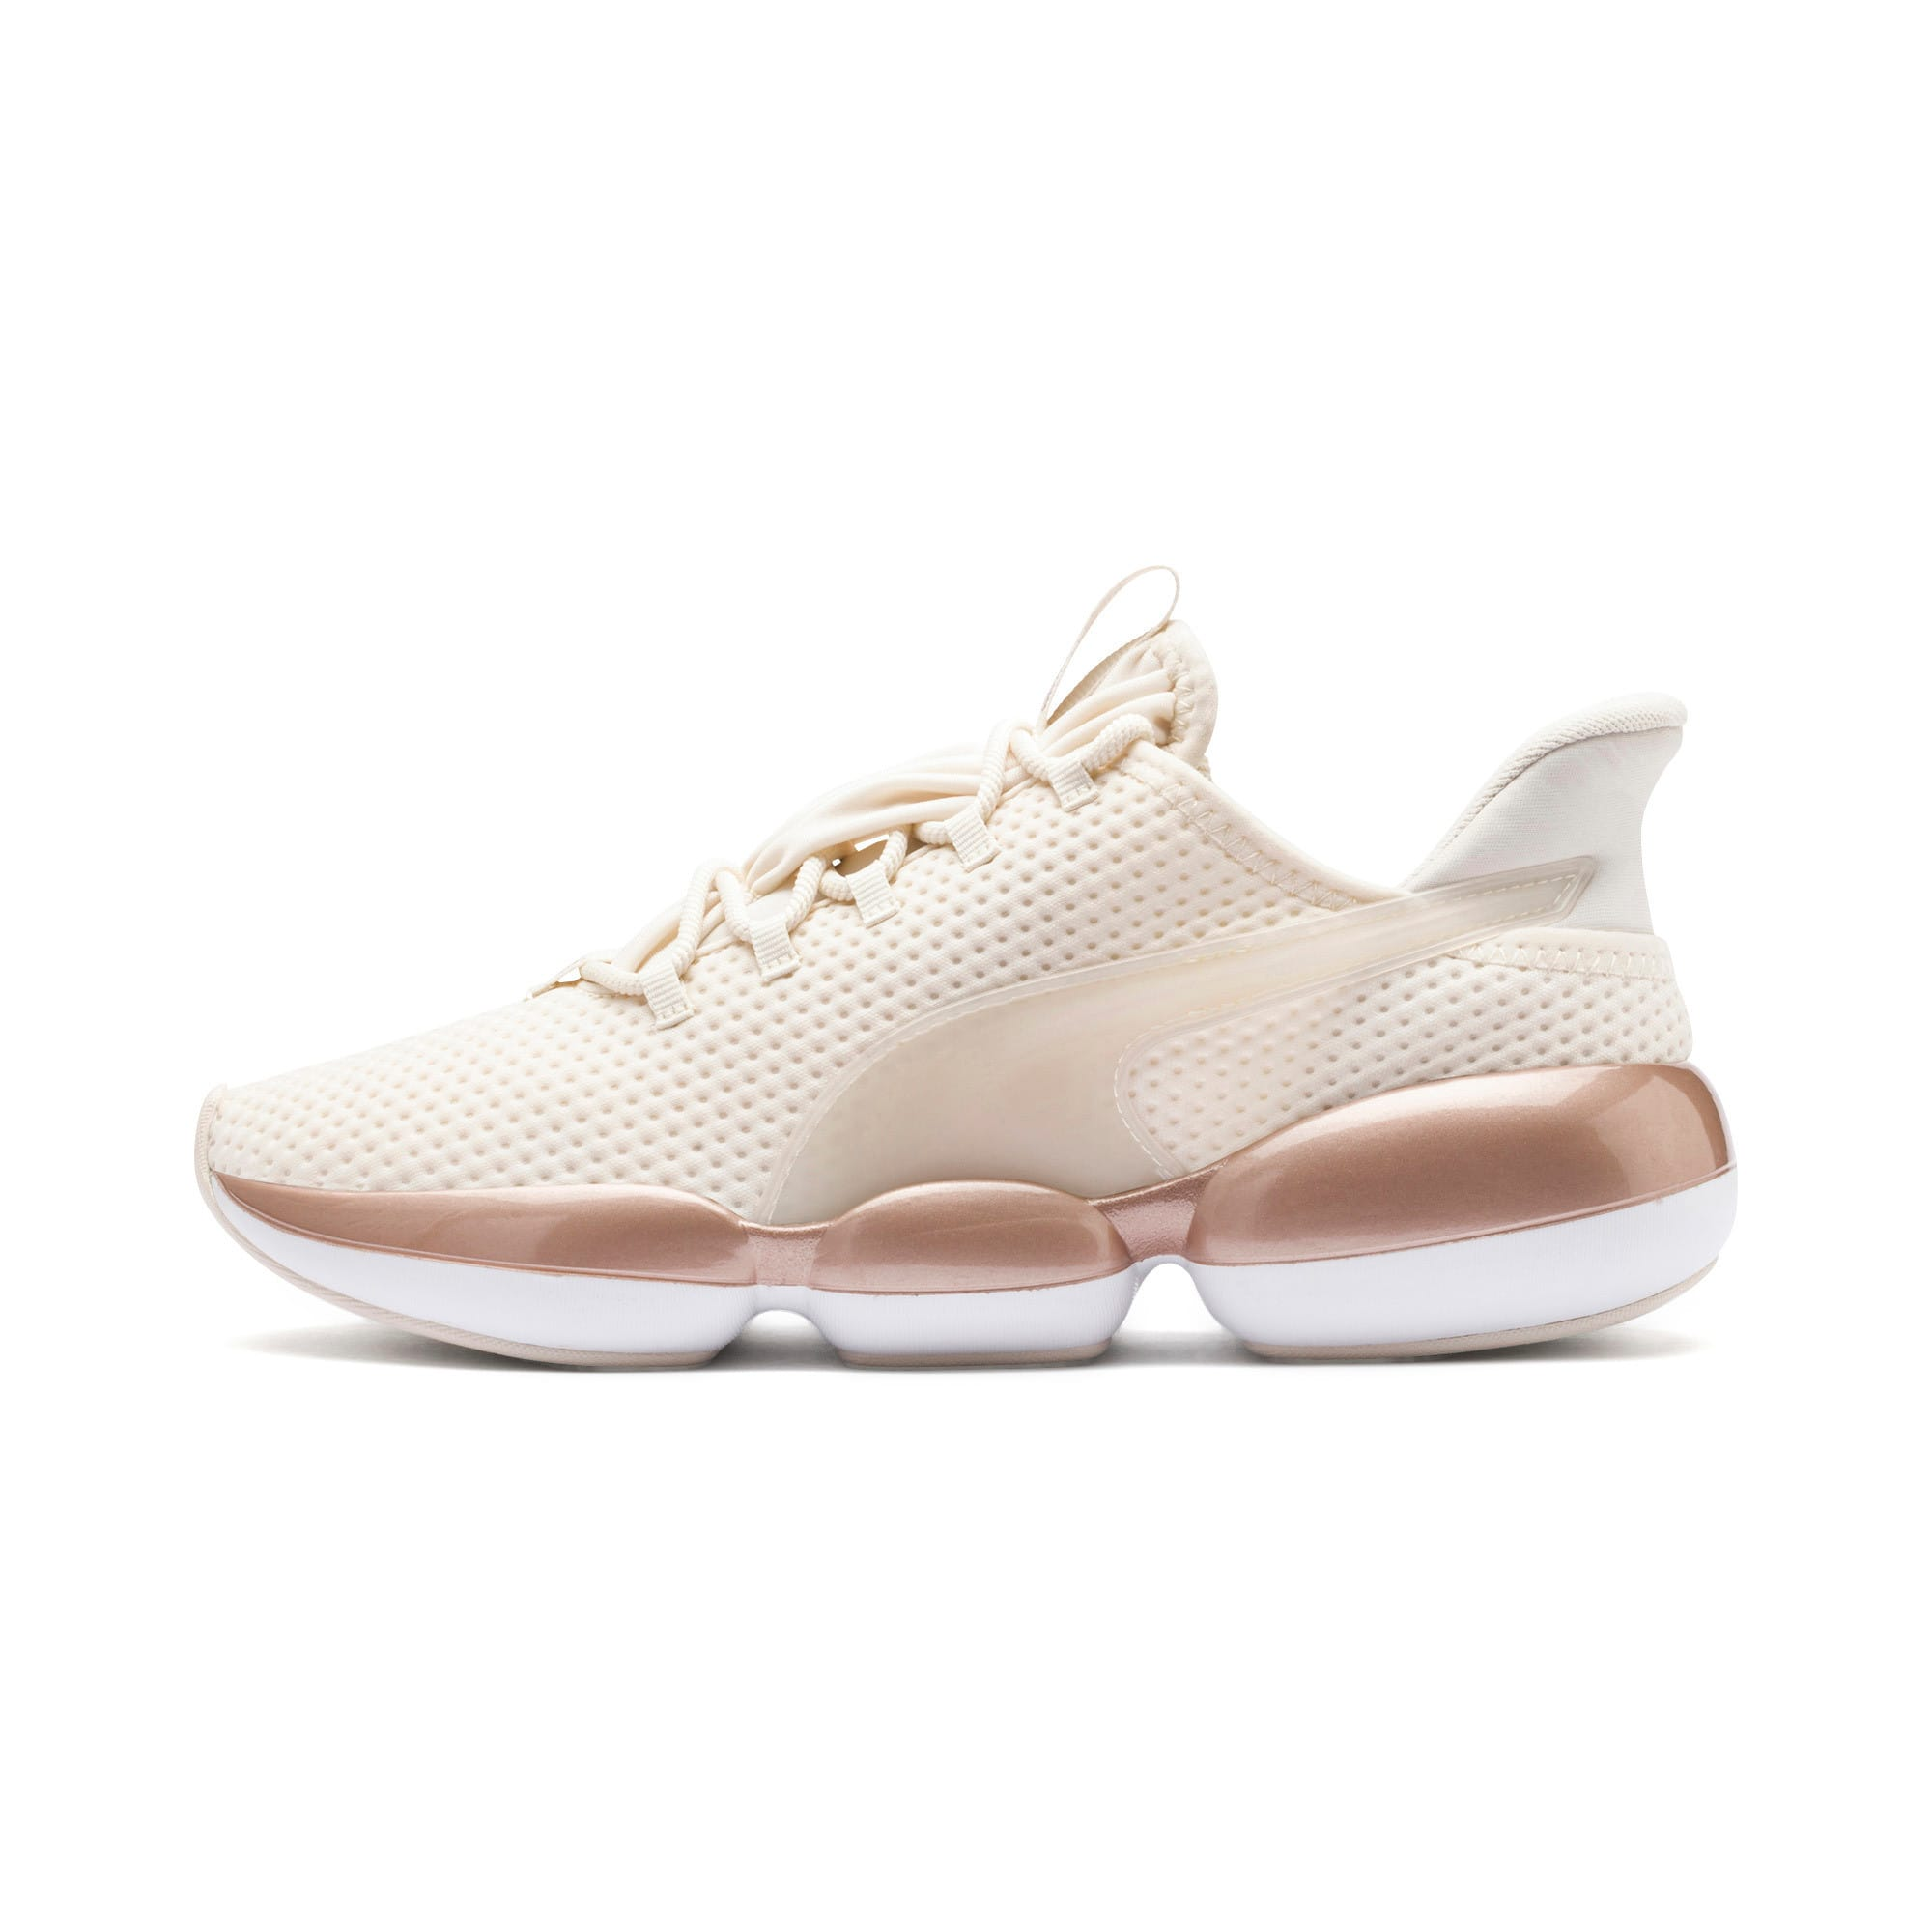 Thumbnail 1 of Mode XT Women's Training Trainers, Pastel Parchment-Rose Gold, medium